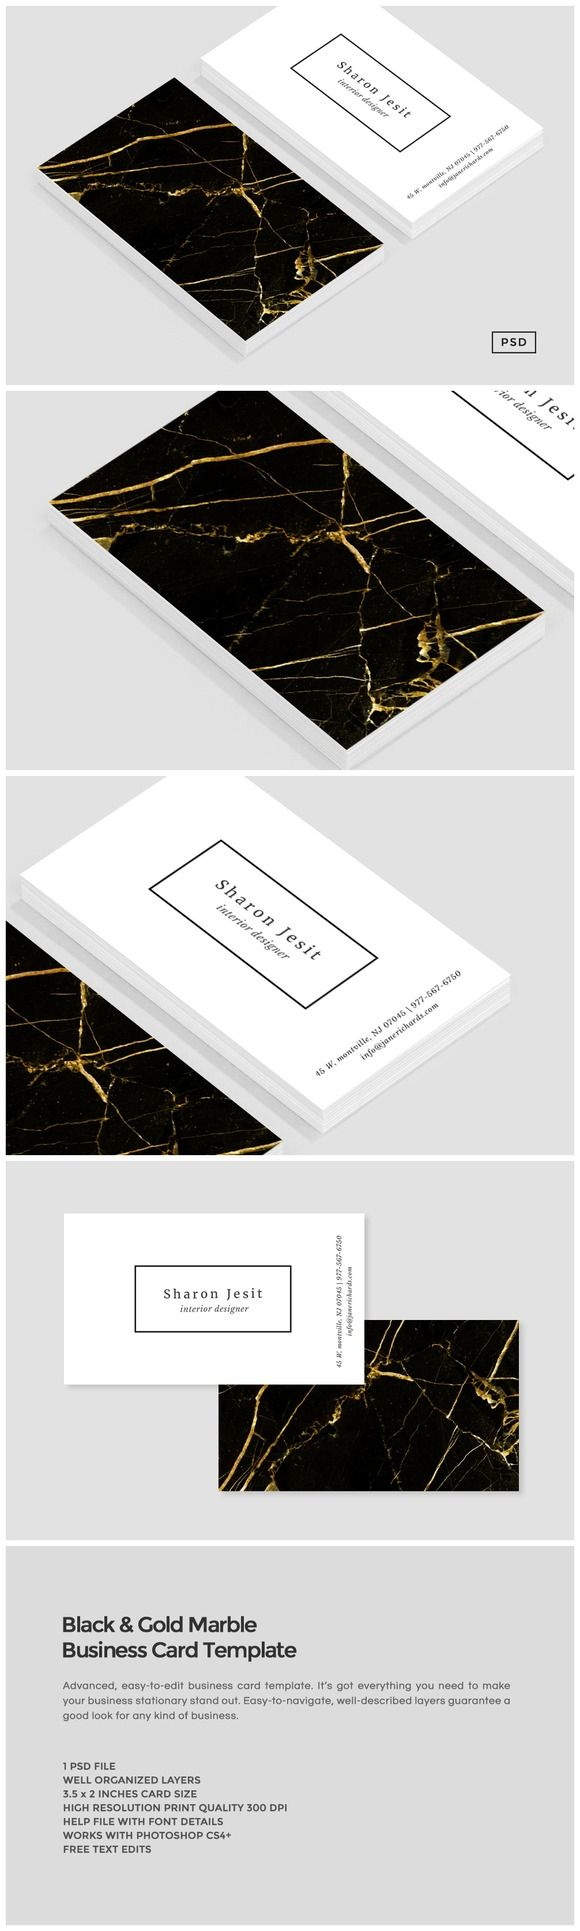 Black & Gold Marble Business Card by Design Co. on Creative Market